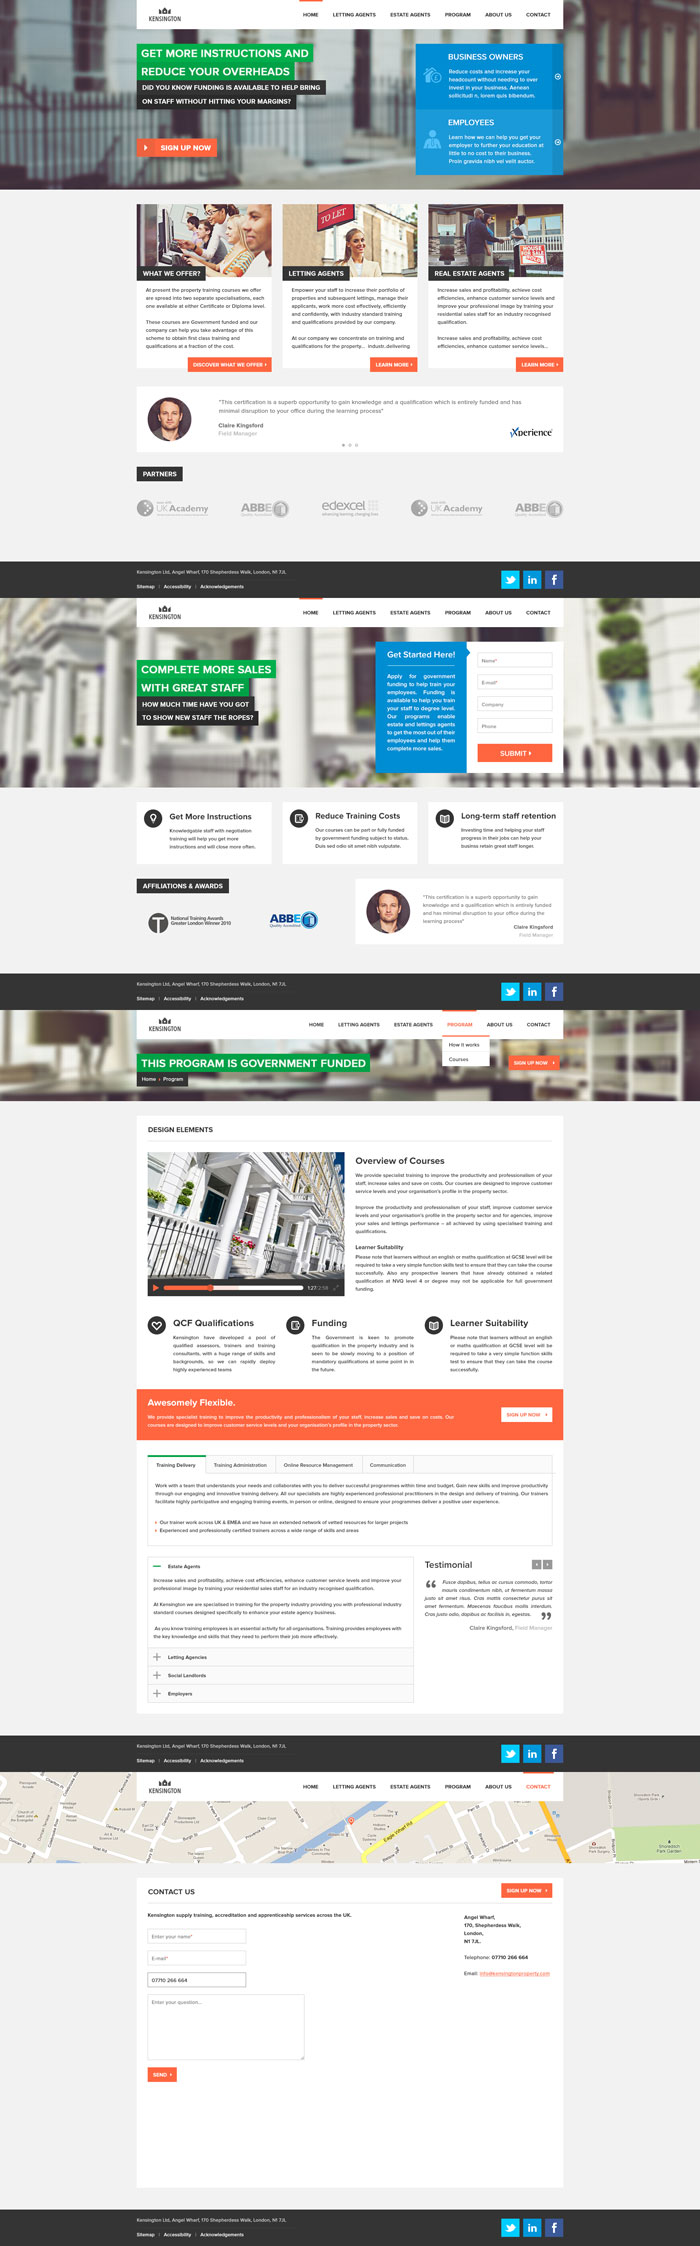 Estate and Lettings Agents Flat Web Design Inspiration